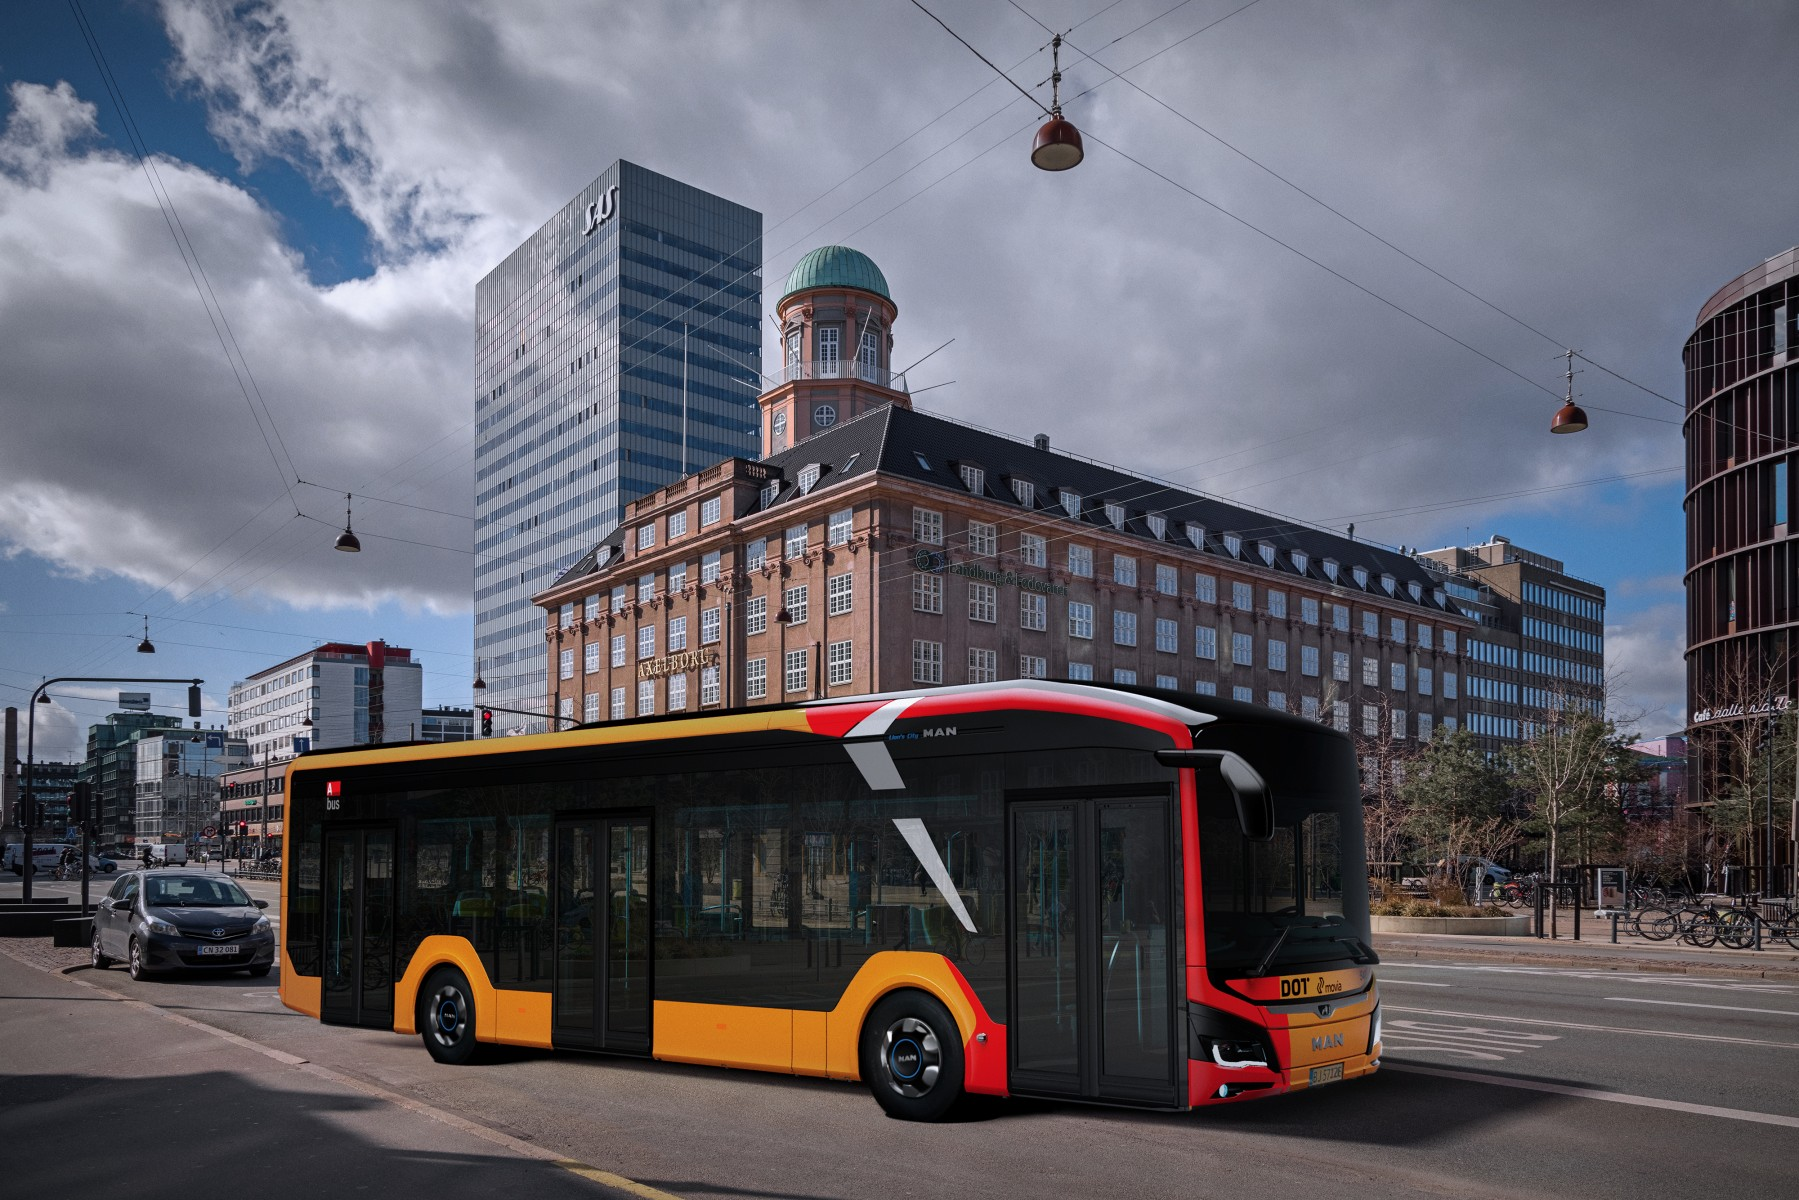 MAN electric bus Copenhagen